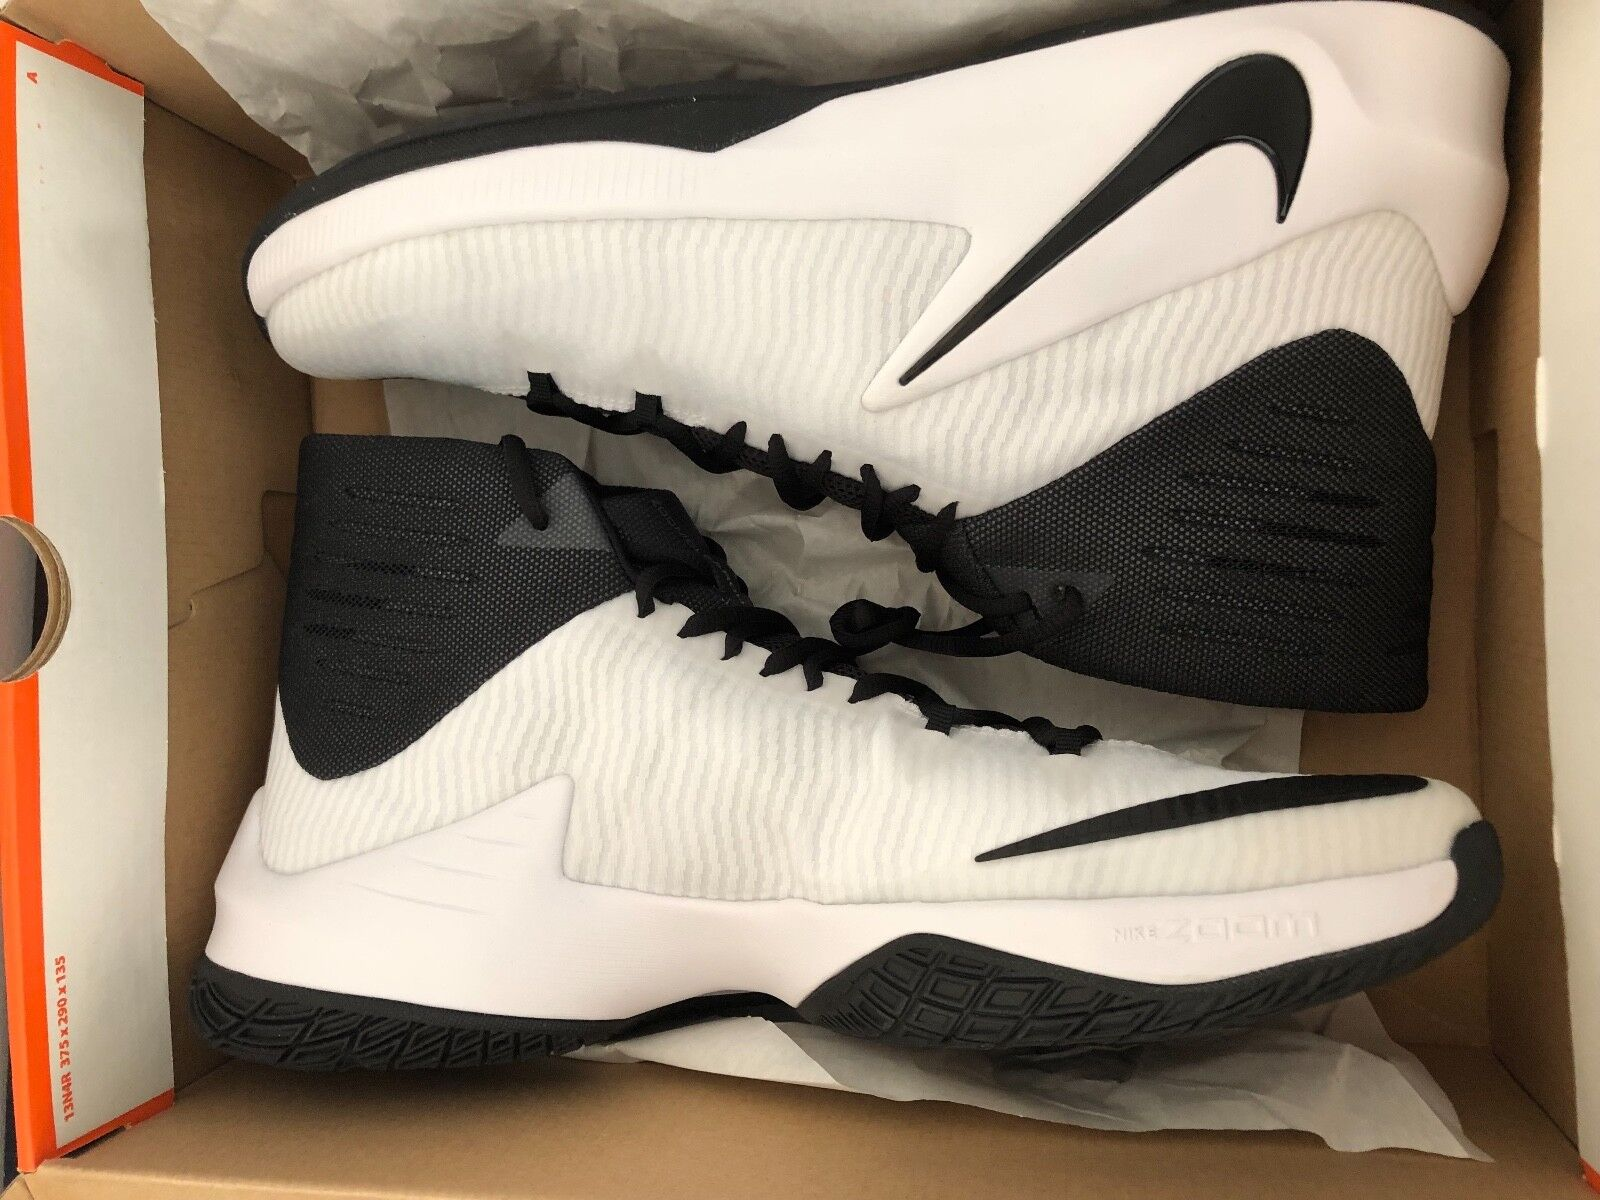 NIKE ZOOM CLEAR OUT TB PROMO  (856486-100) SIZE 15